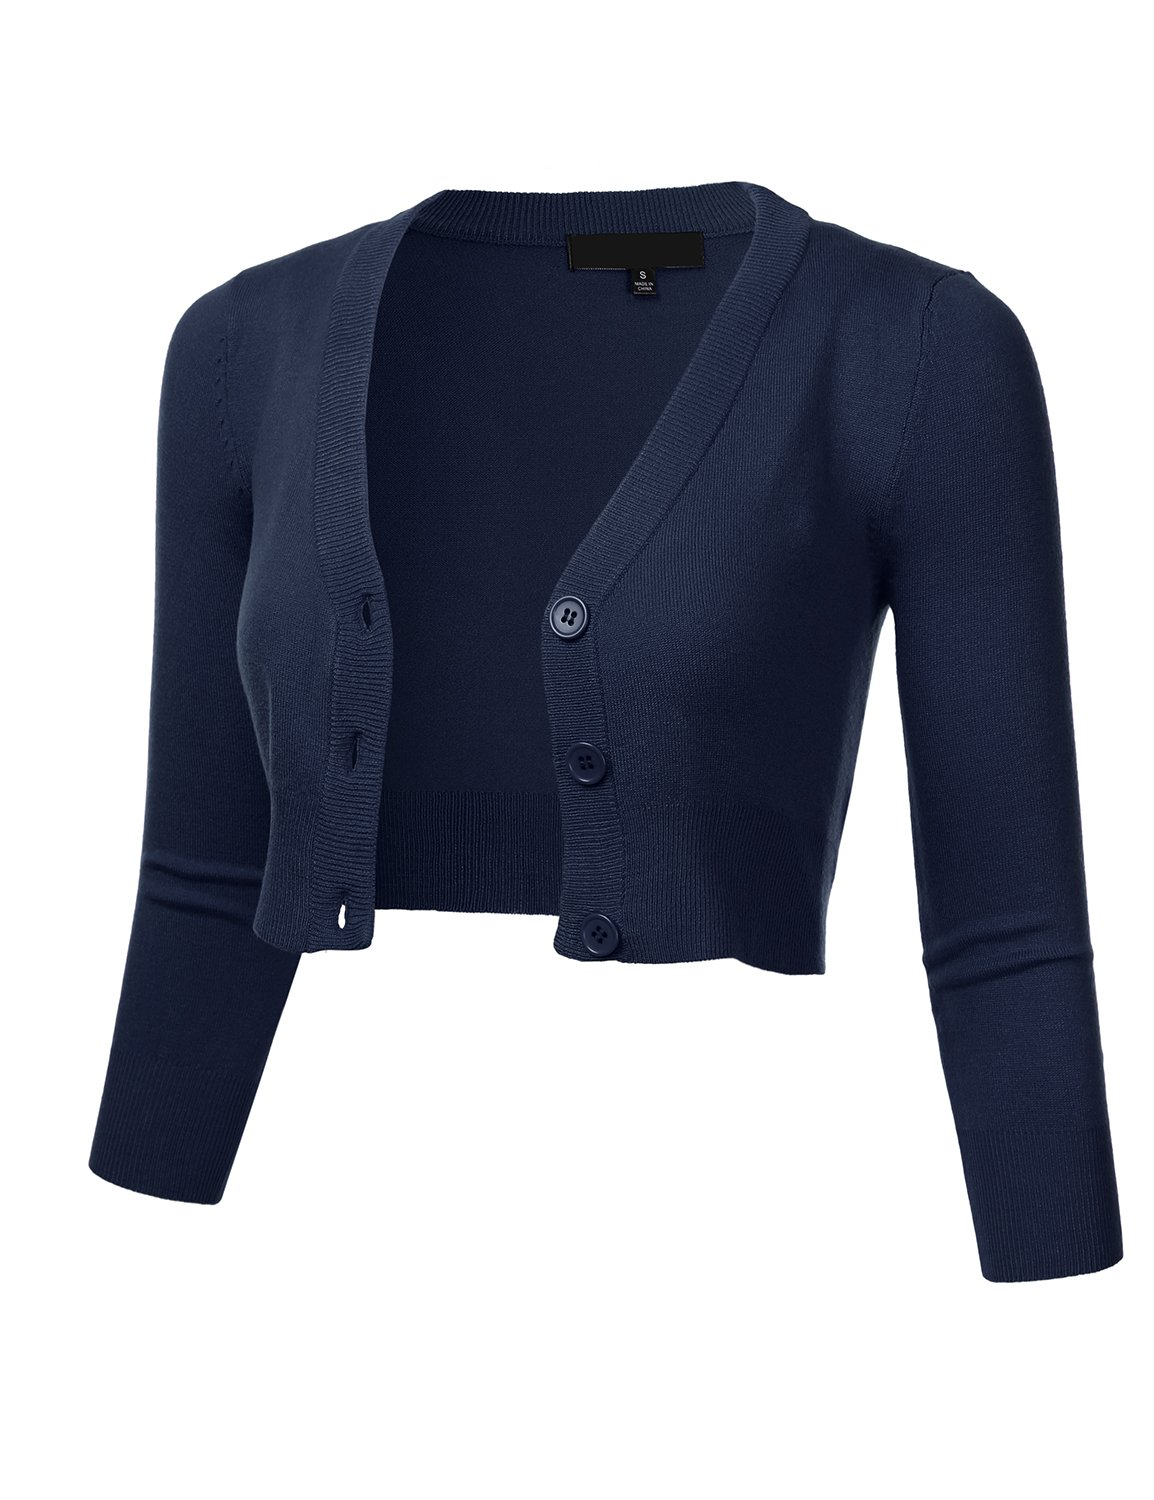 FLORIA Women Solid Button Down 3/4 Sleeve Cropped Bolero Cardigan Sweater Navy 4X